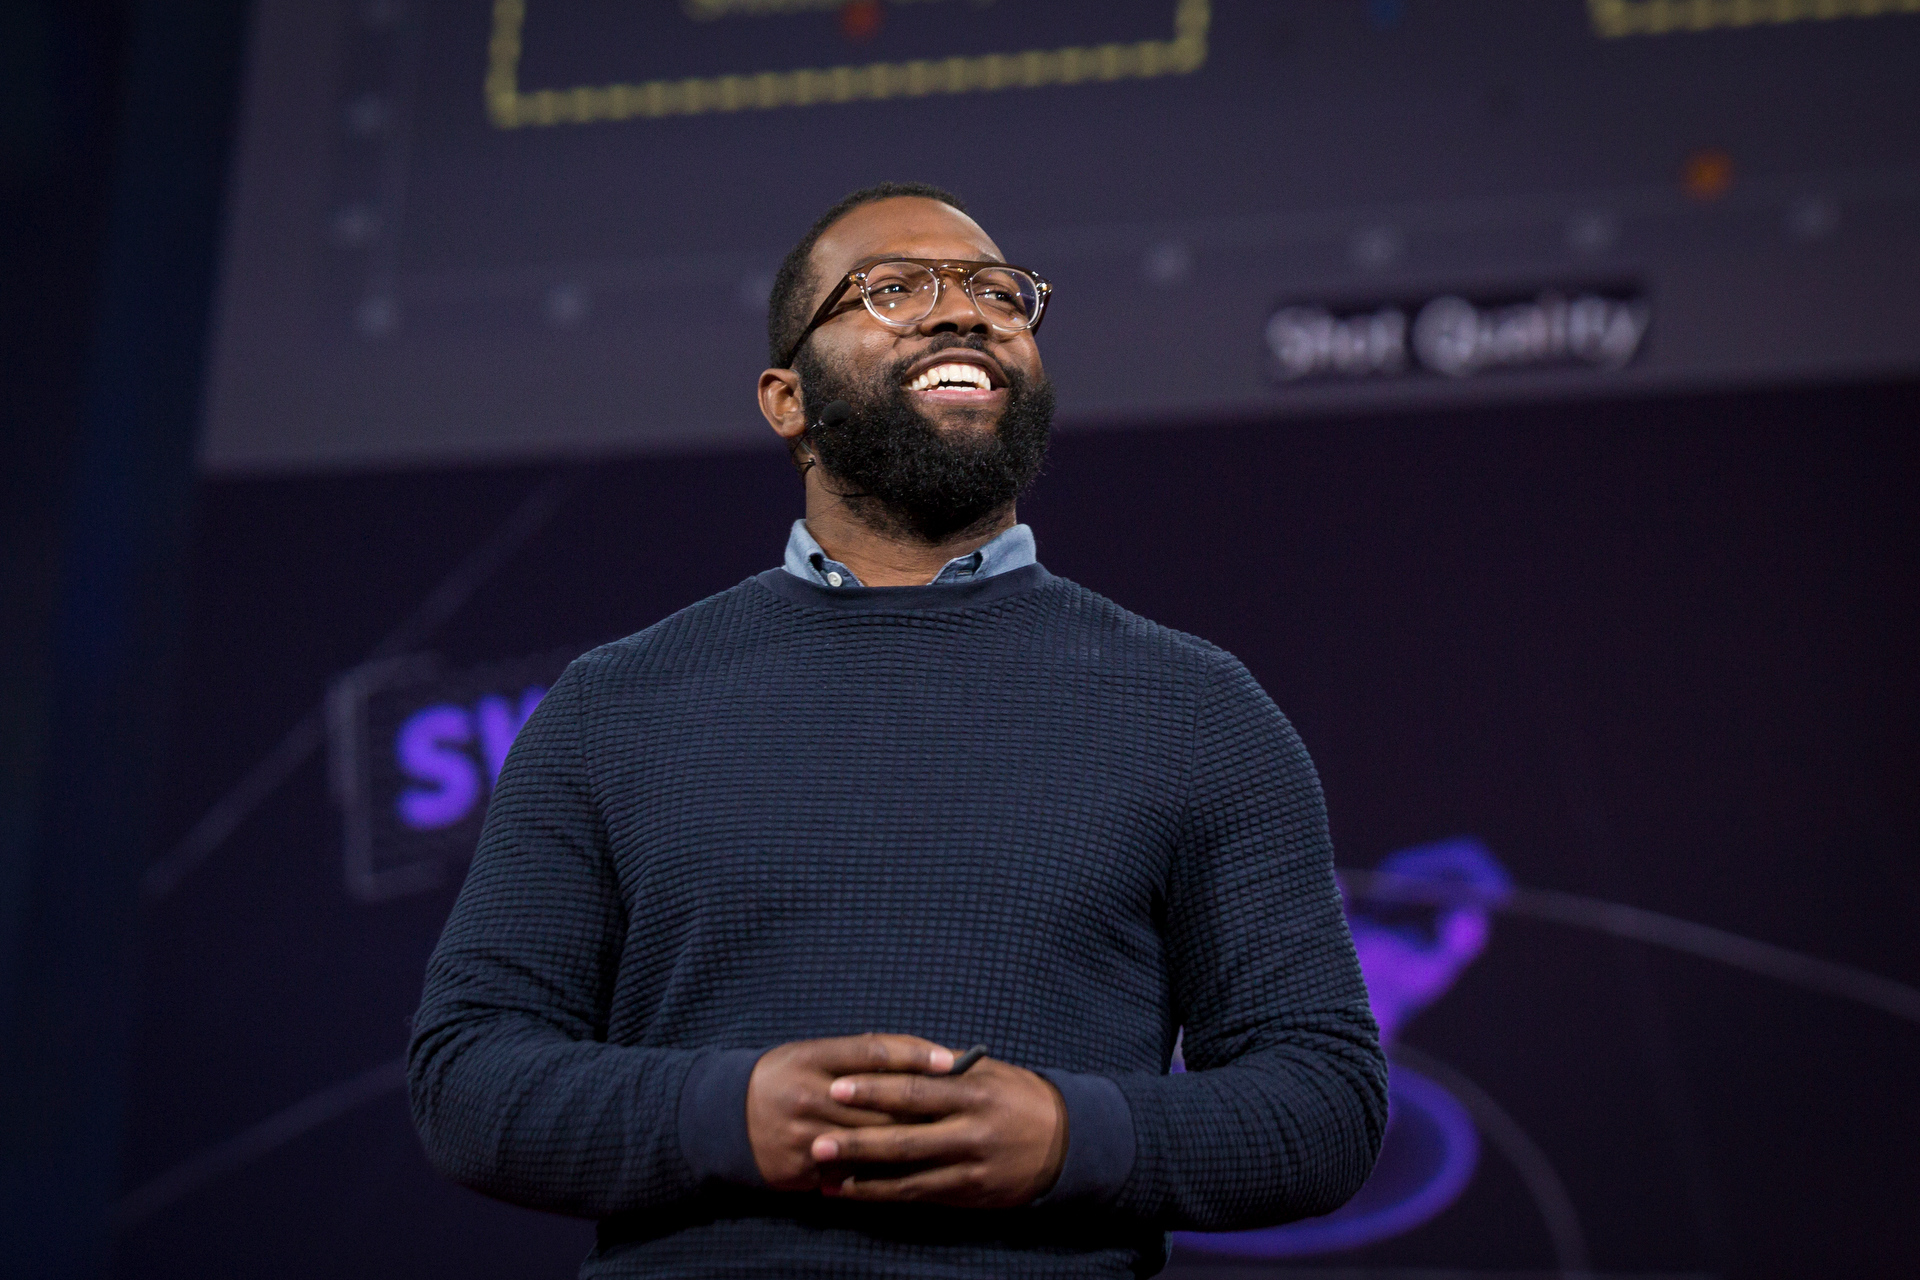 Baratunde Thurston speaks at TED2015 - Truth and Dare, Session 12. Photo: Bret Hartman/TED